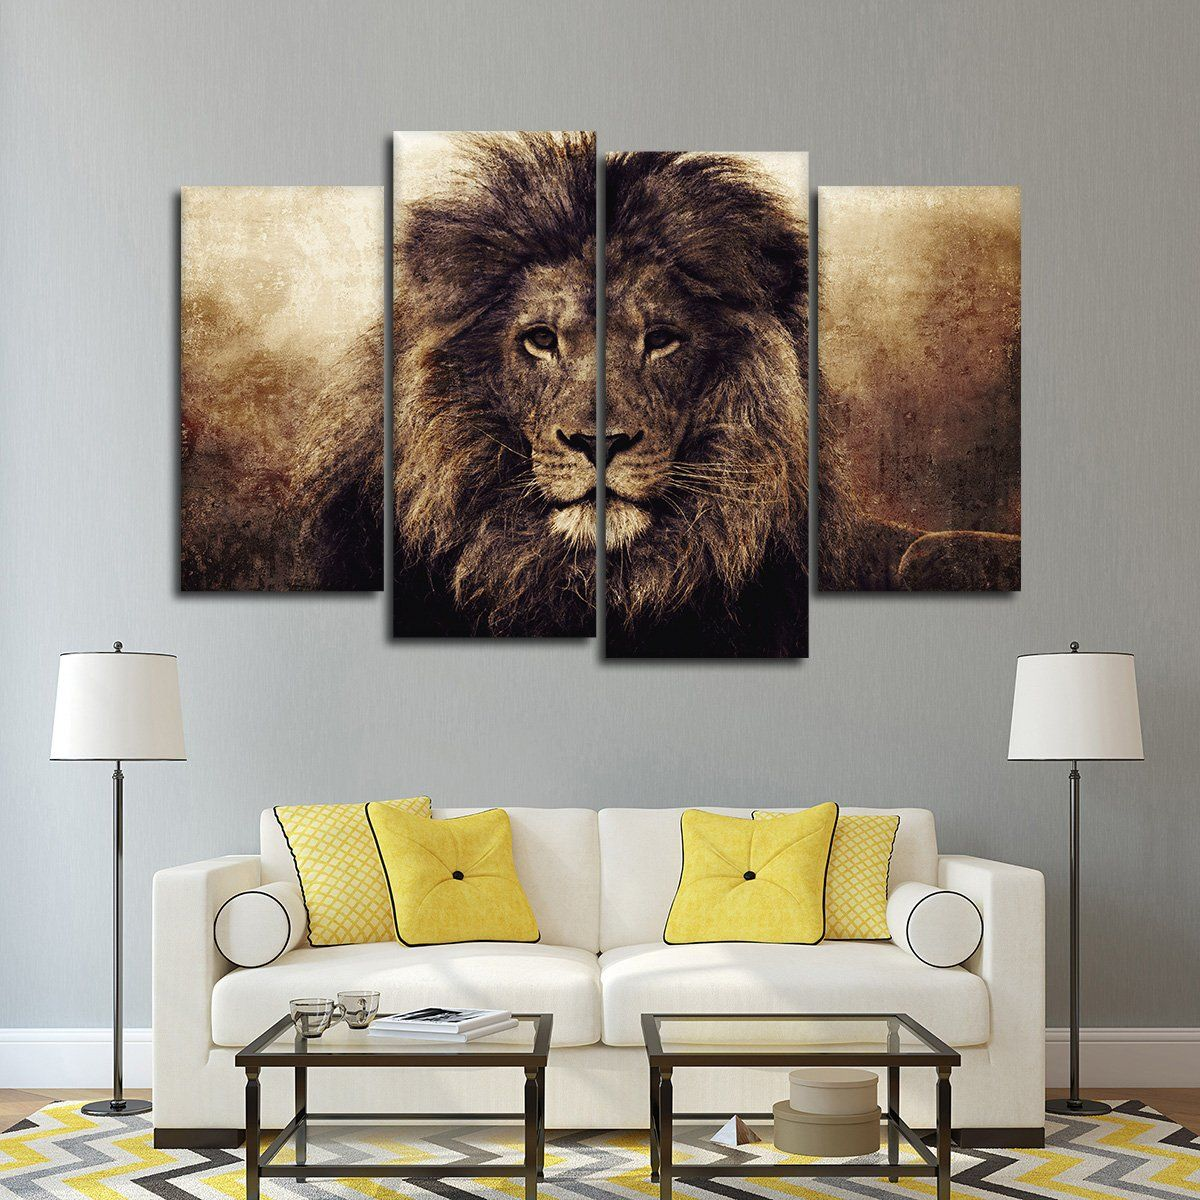 ABSTRACT LION SPLIT CANVAS WALL ART PICTURES PRINTS LARGER SIZES AVAILABLE